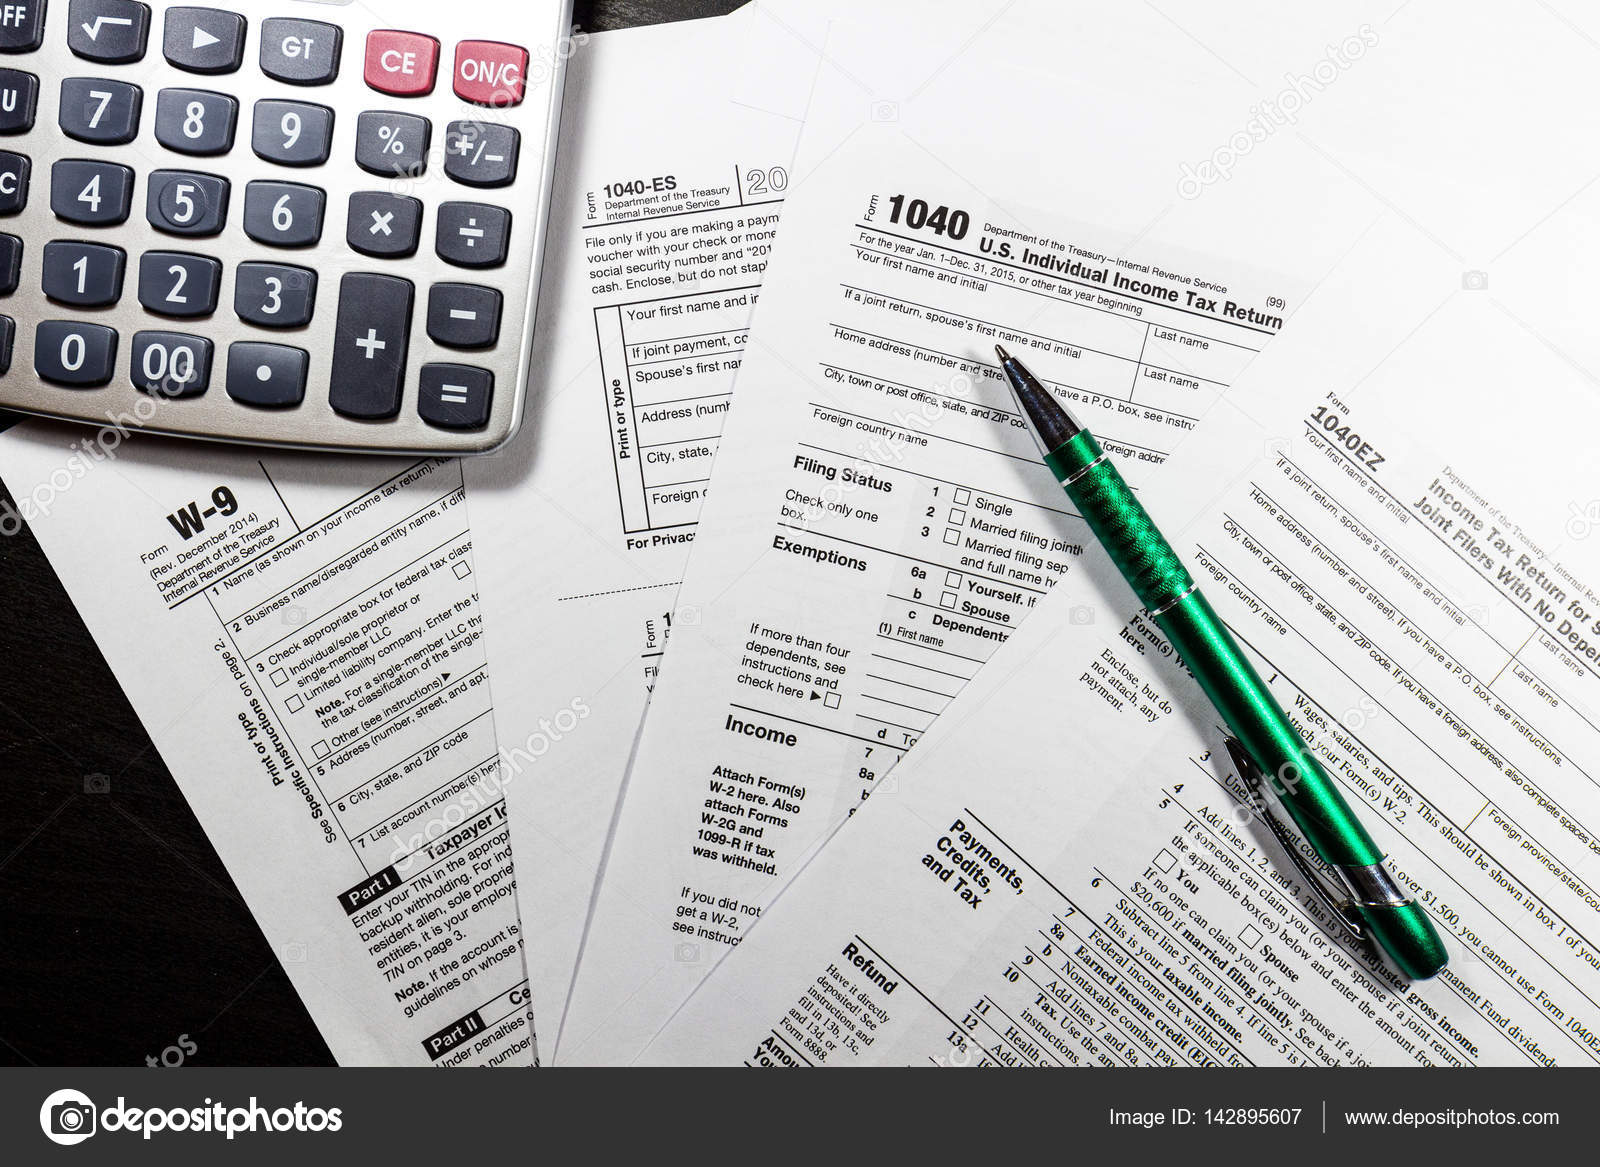 Us tax return form 1040 stock photo daliu 142895607 calculator and us individual income tax return blank papers form 1040 earnings and taxes concept photo by daliu falaconquin